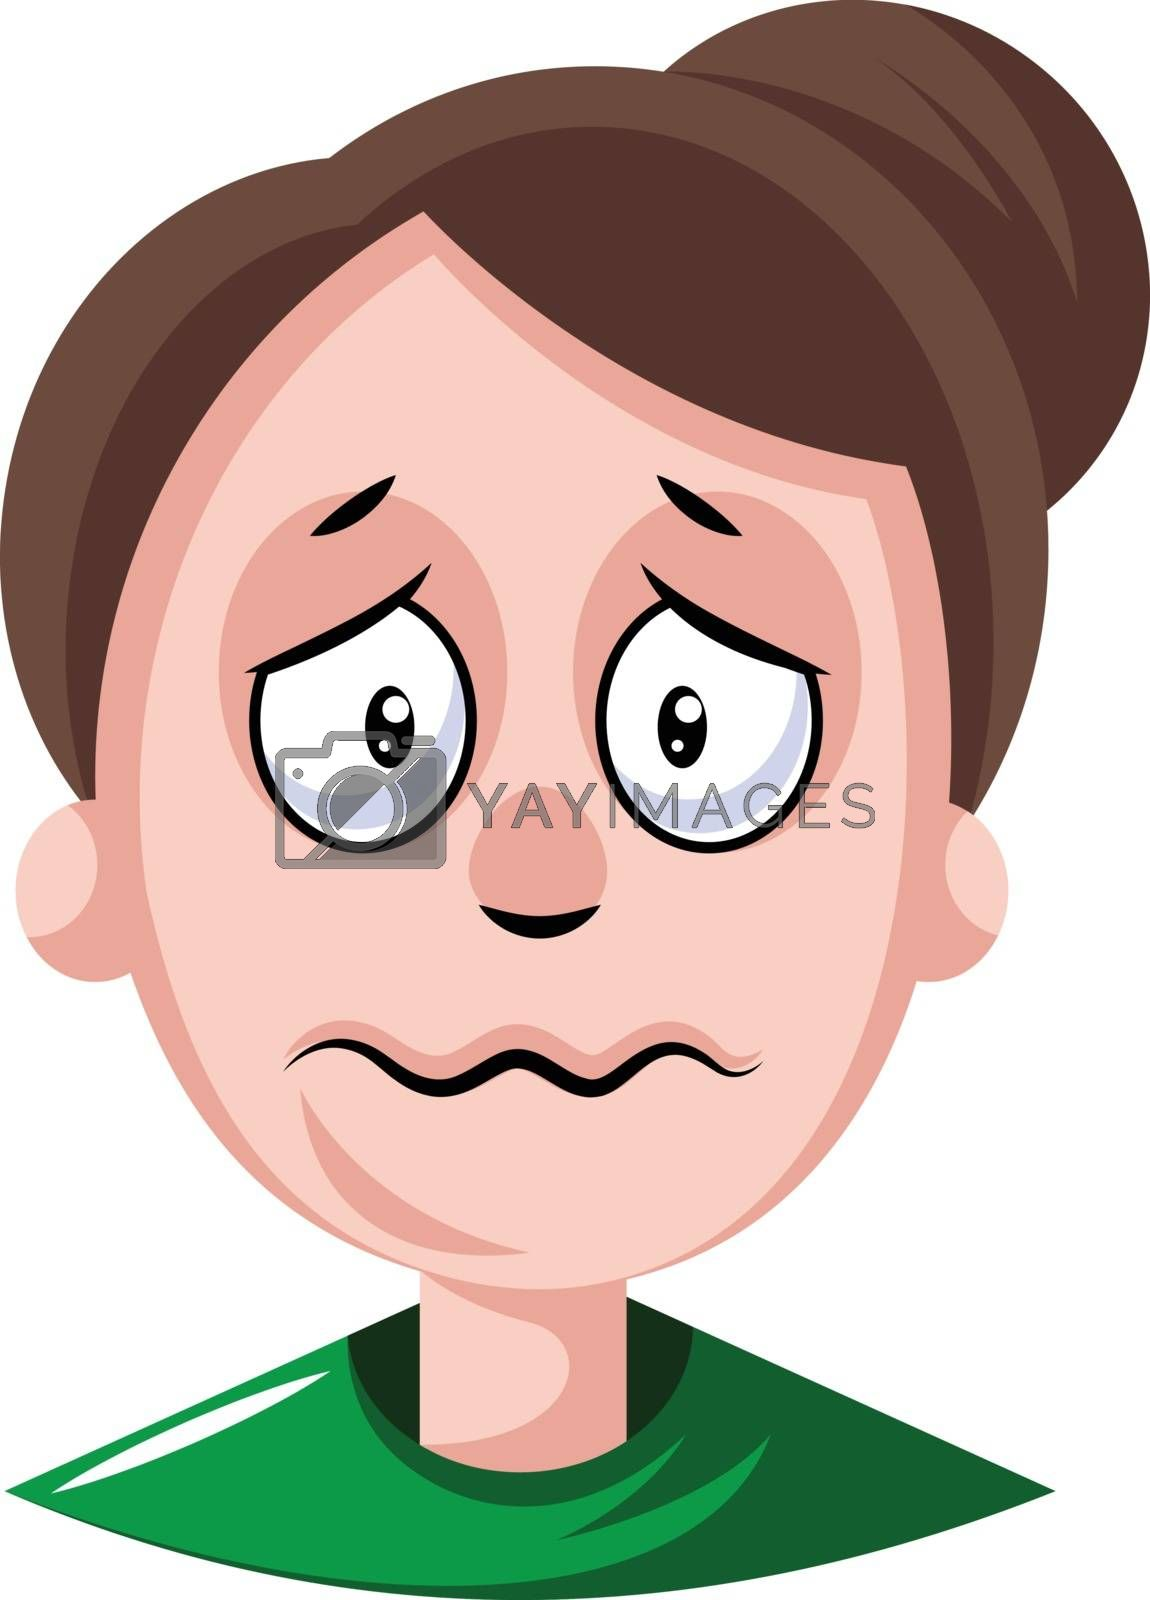 Royalty free image of Woman with hair tied in a bun is depressed illustration vector o by Morphart